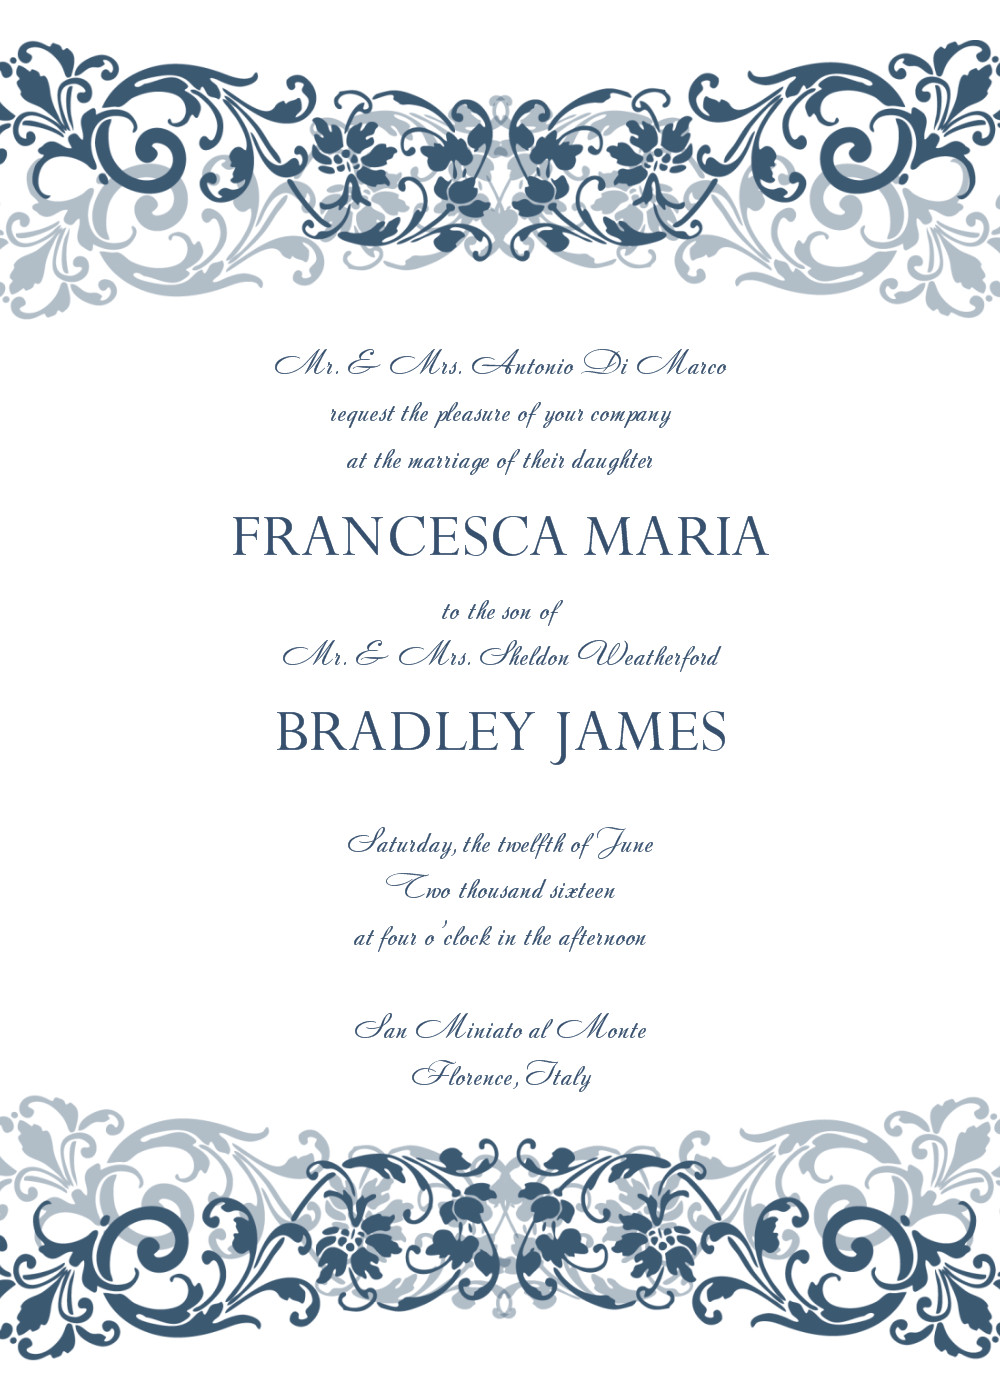 Wedding Invite Wording Template 8 Free Wedding Invitation Templates Excel Pdf formats